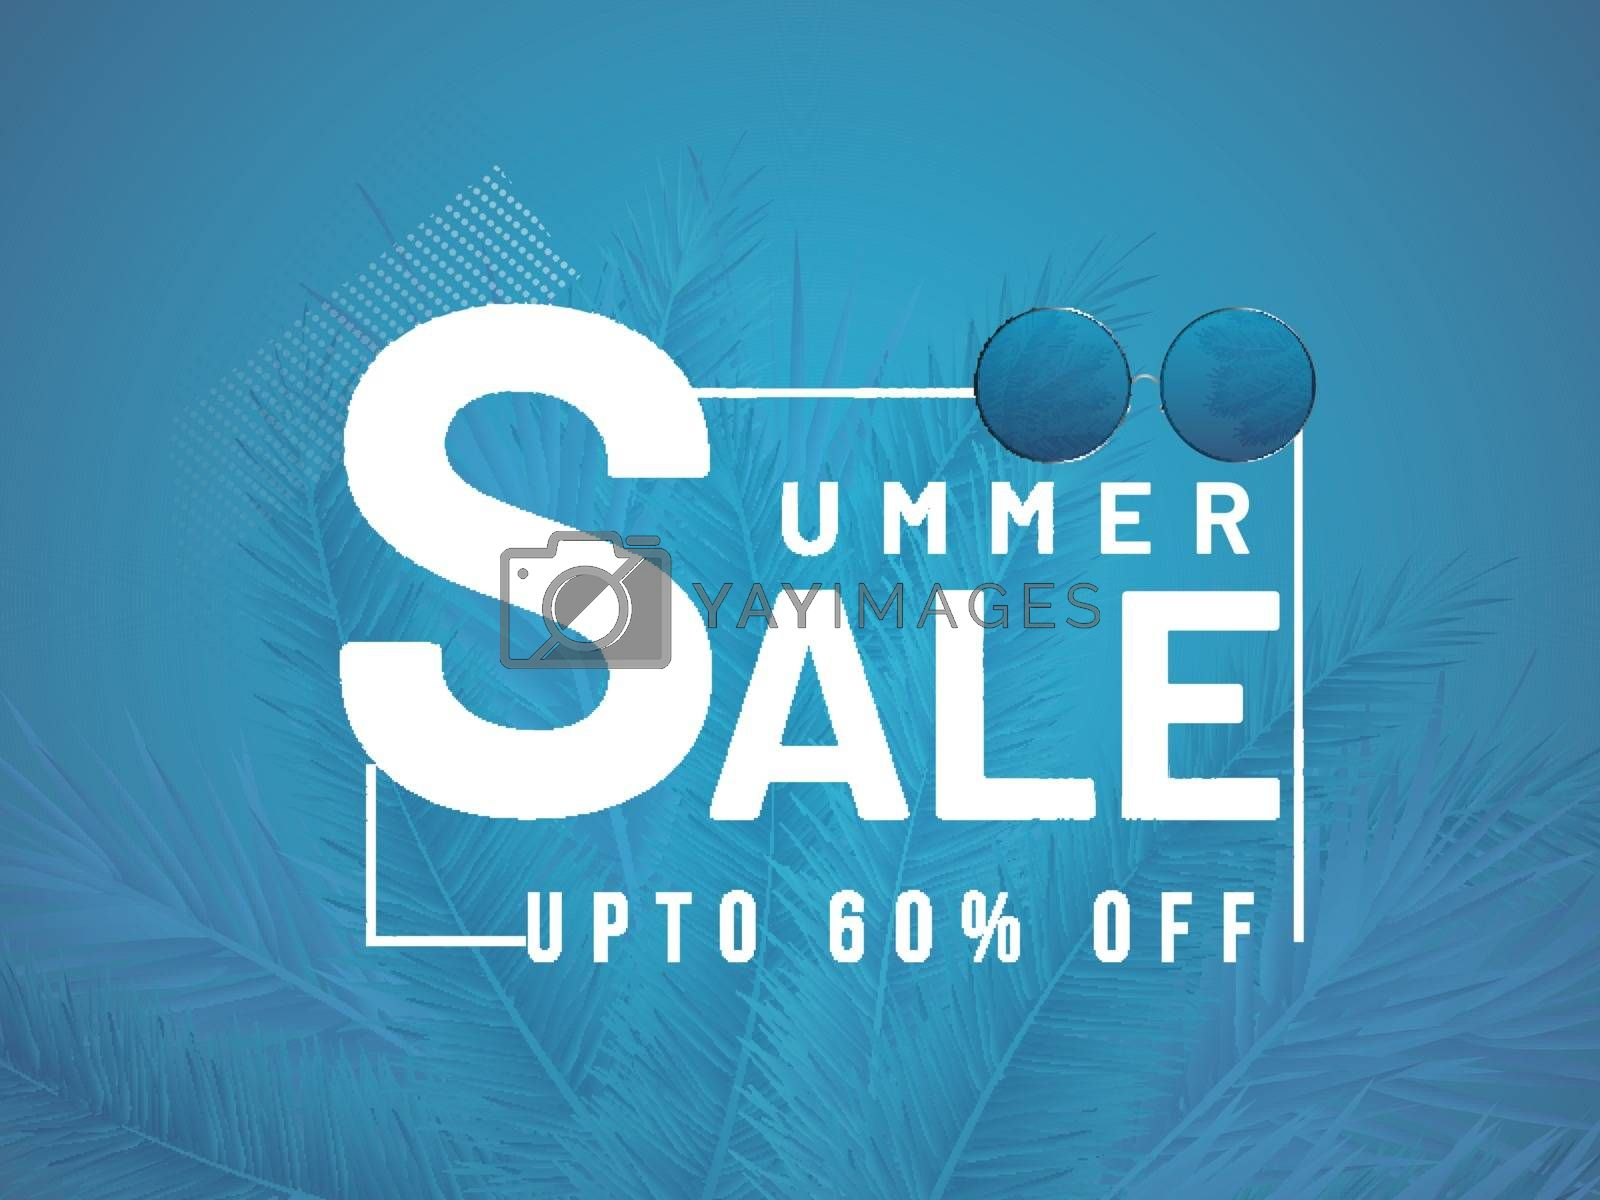 Royalty free image of Summer sale banner or poster design with 60% discount offer and  by aispl